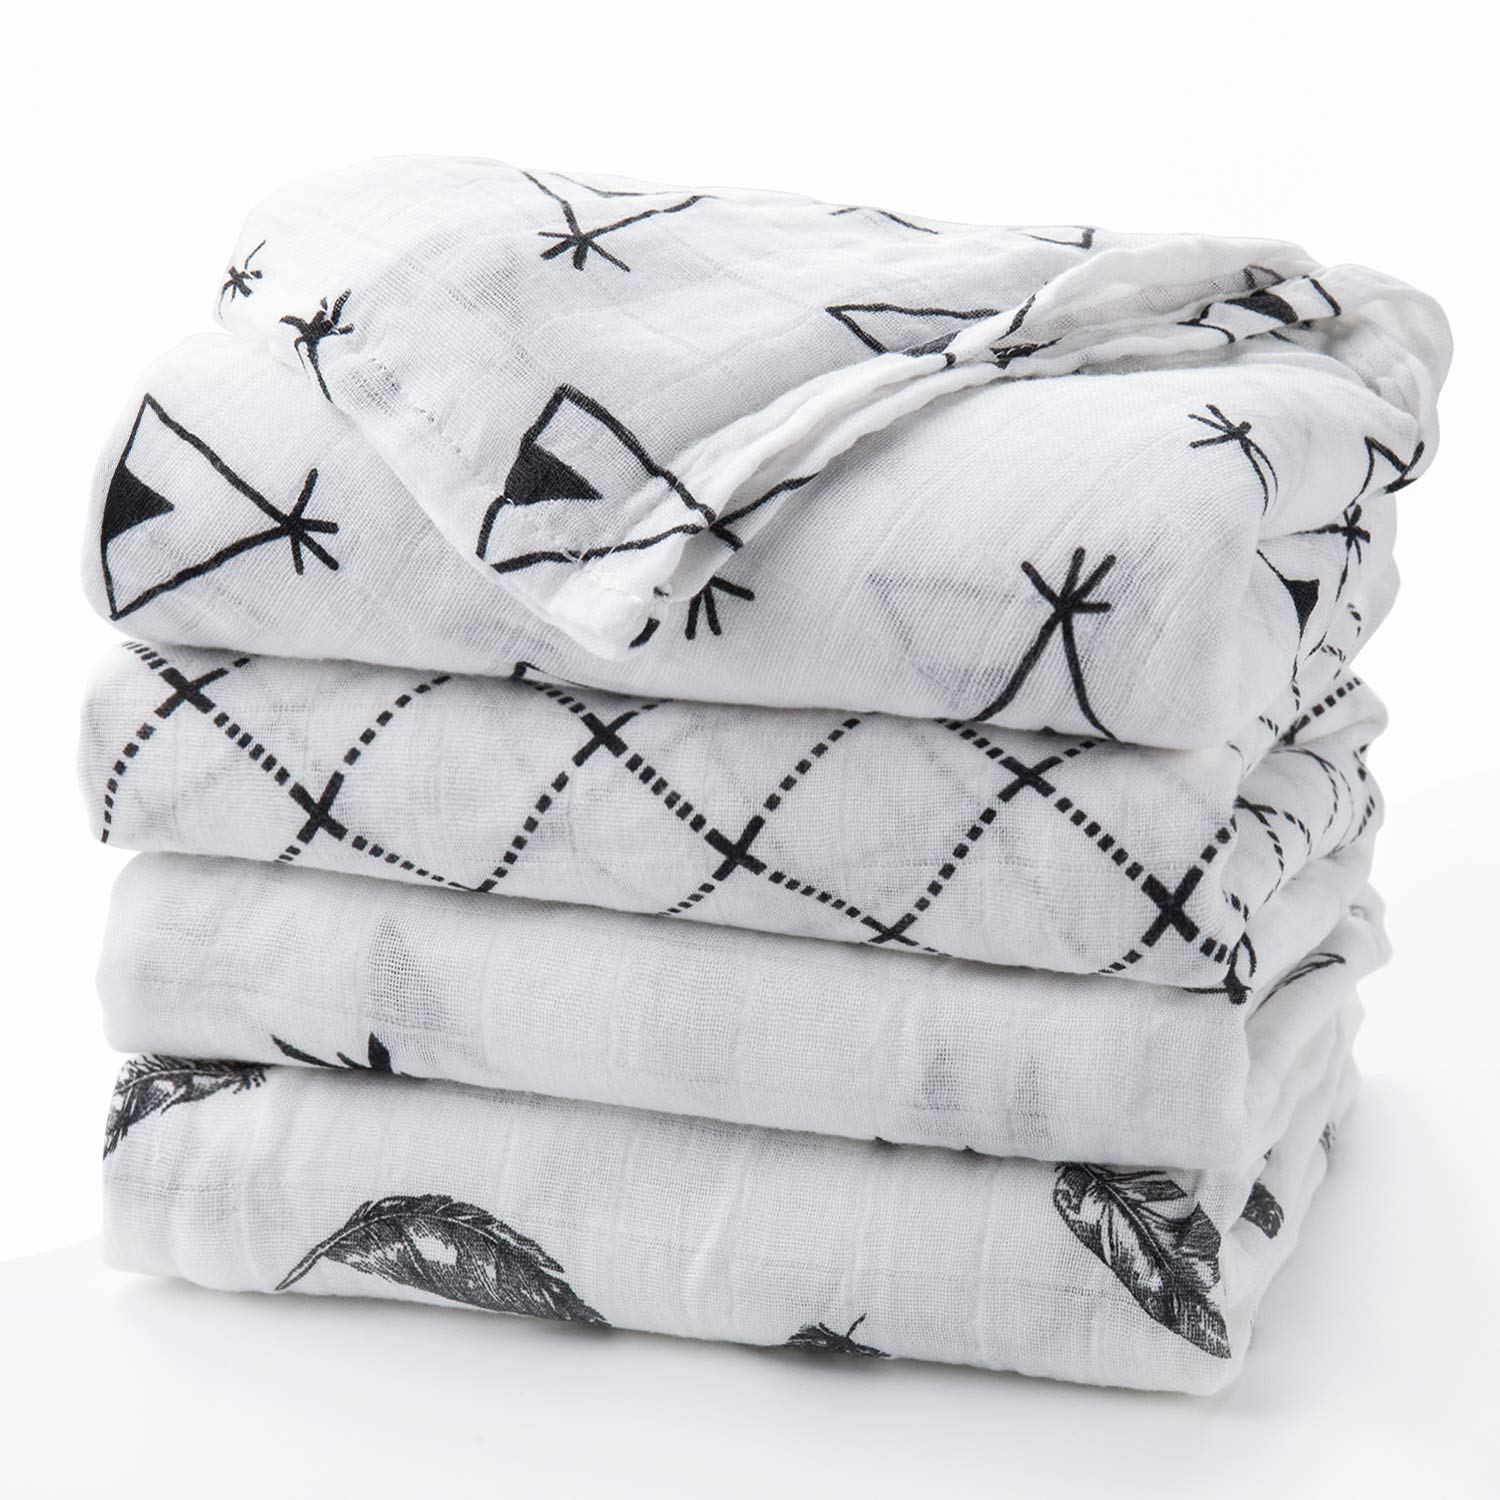 Baby Swaddle Blanket Upsimples Unisex Swaddle Wrap Soft Silky Bamboo Muslin Swaddle Blanket Neutral Receiving Blanket for Boys and Girls, Large 47 x 47 inches, Set of 4-Arrow/Feather/Tent/Crisscross